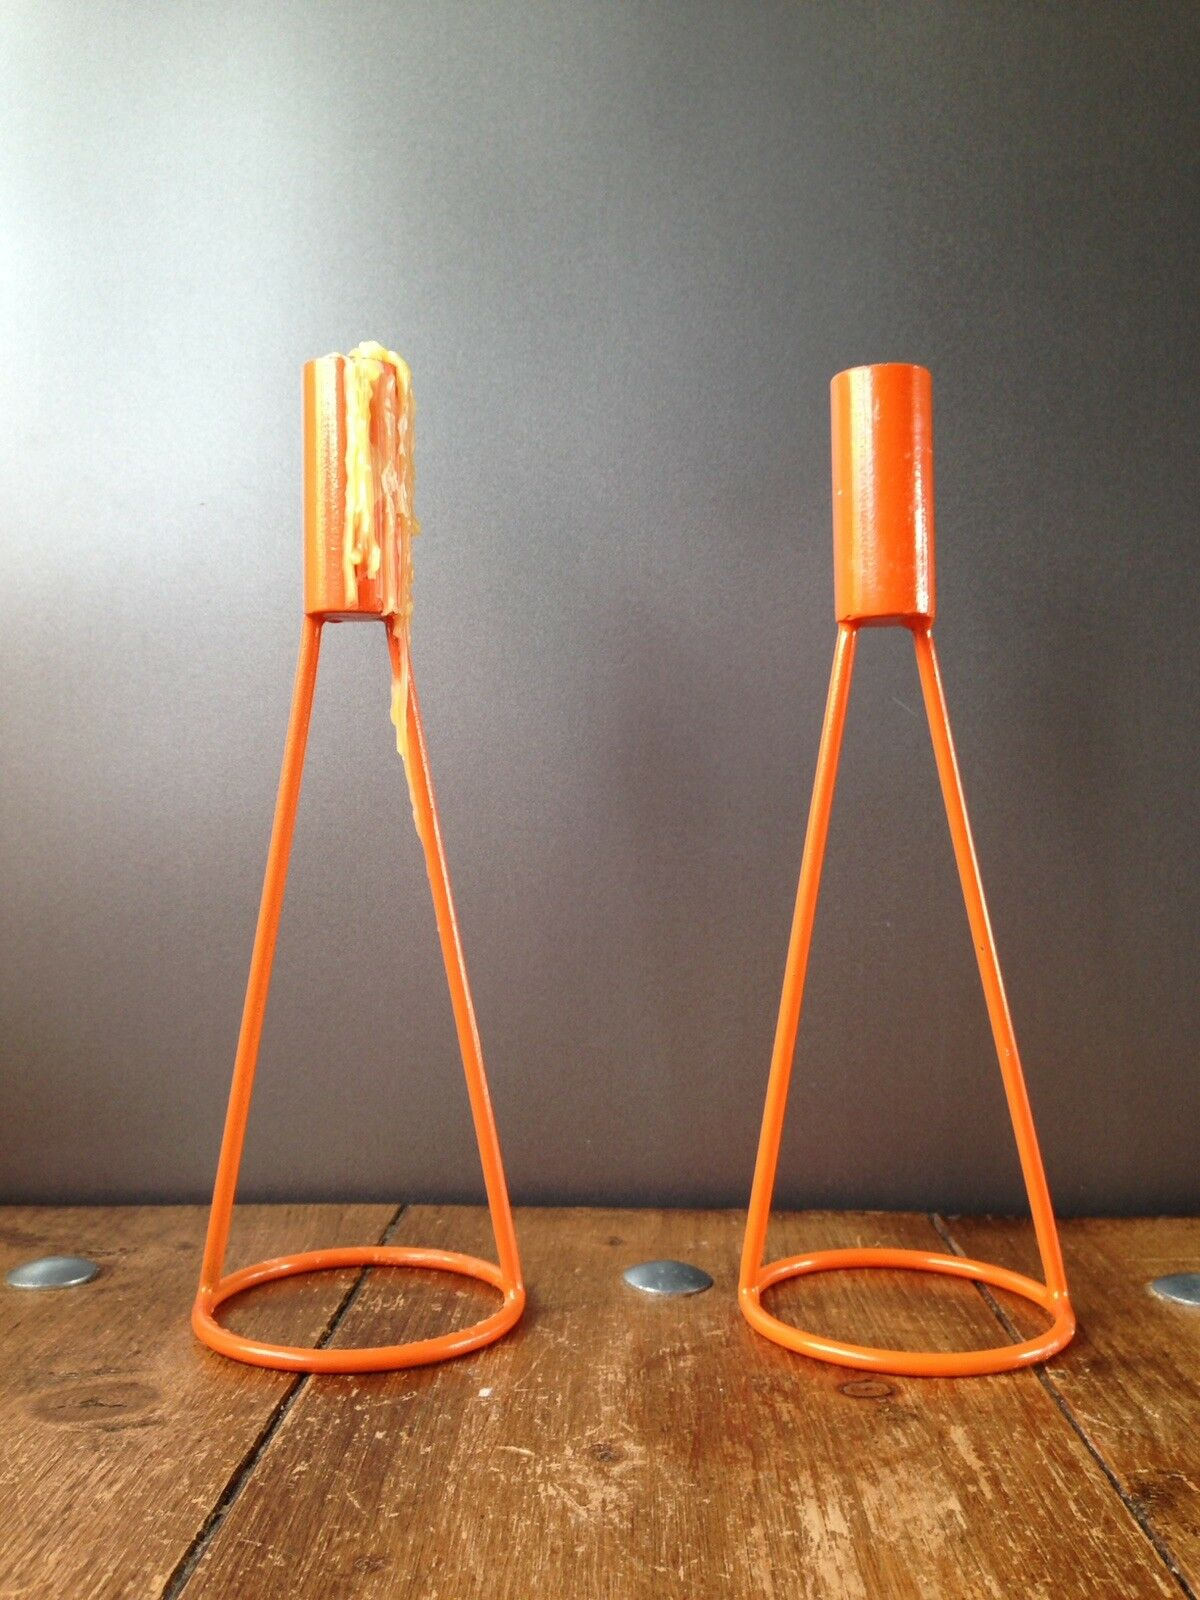 STYLISH PAIR OF RETRO BRIGHT Orange METAL CONICAL CANDLE HOLDERS VINTAGE MCM 70S